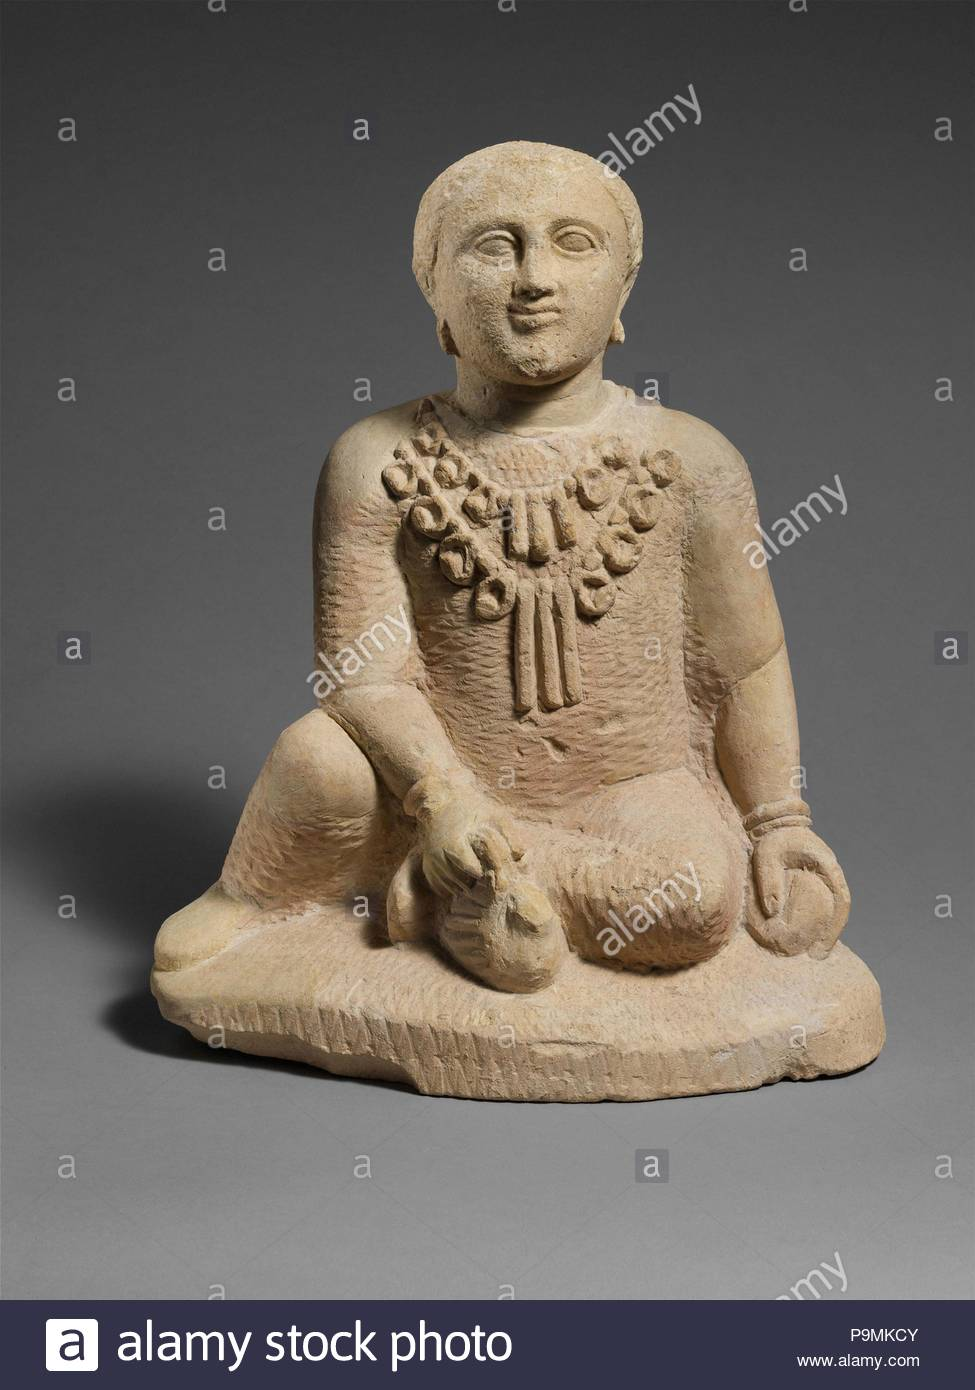 Limestone temple boy, Classical, late 5th century B.C., Cypriot, Limestone, Overall: 15 1/4 x 12 x 8 in. (38.7 x 30.5 x 20.3 cm), Stone Sculpture, He sits on a roughly elliptical plinth. His left hand holds a fruit or ball. His right arm stretches down to hold a bird by its wings near his left foot. He wears two strings of seals with oblong pendants in the middle. - Stock Image